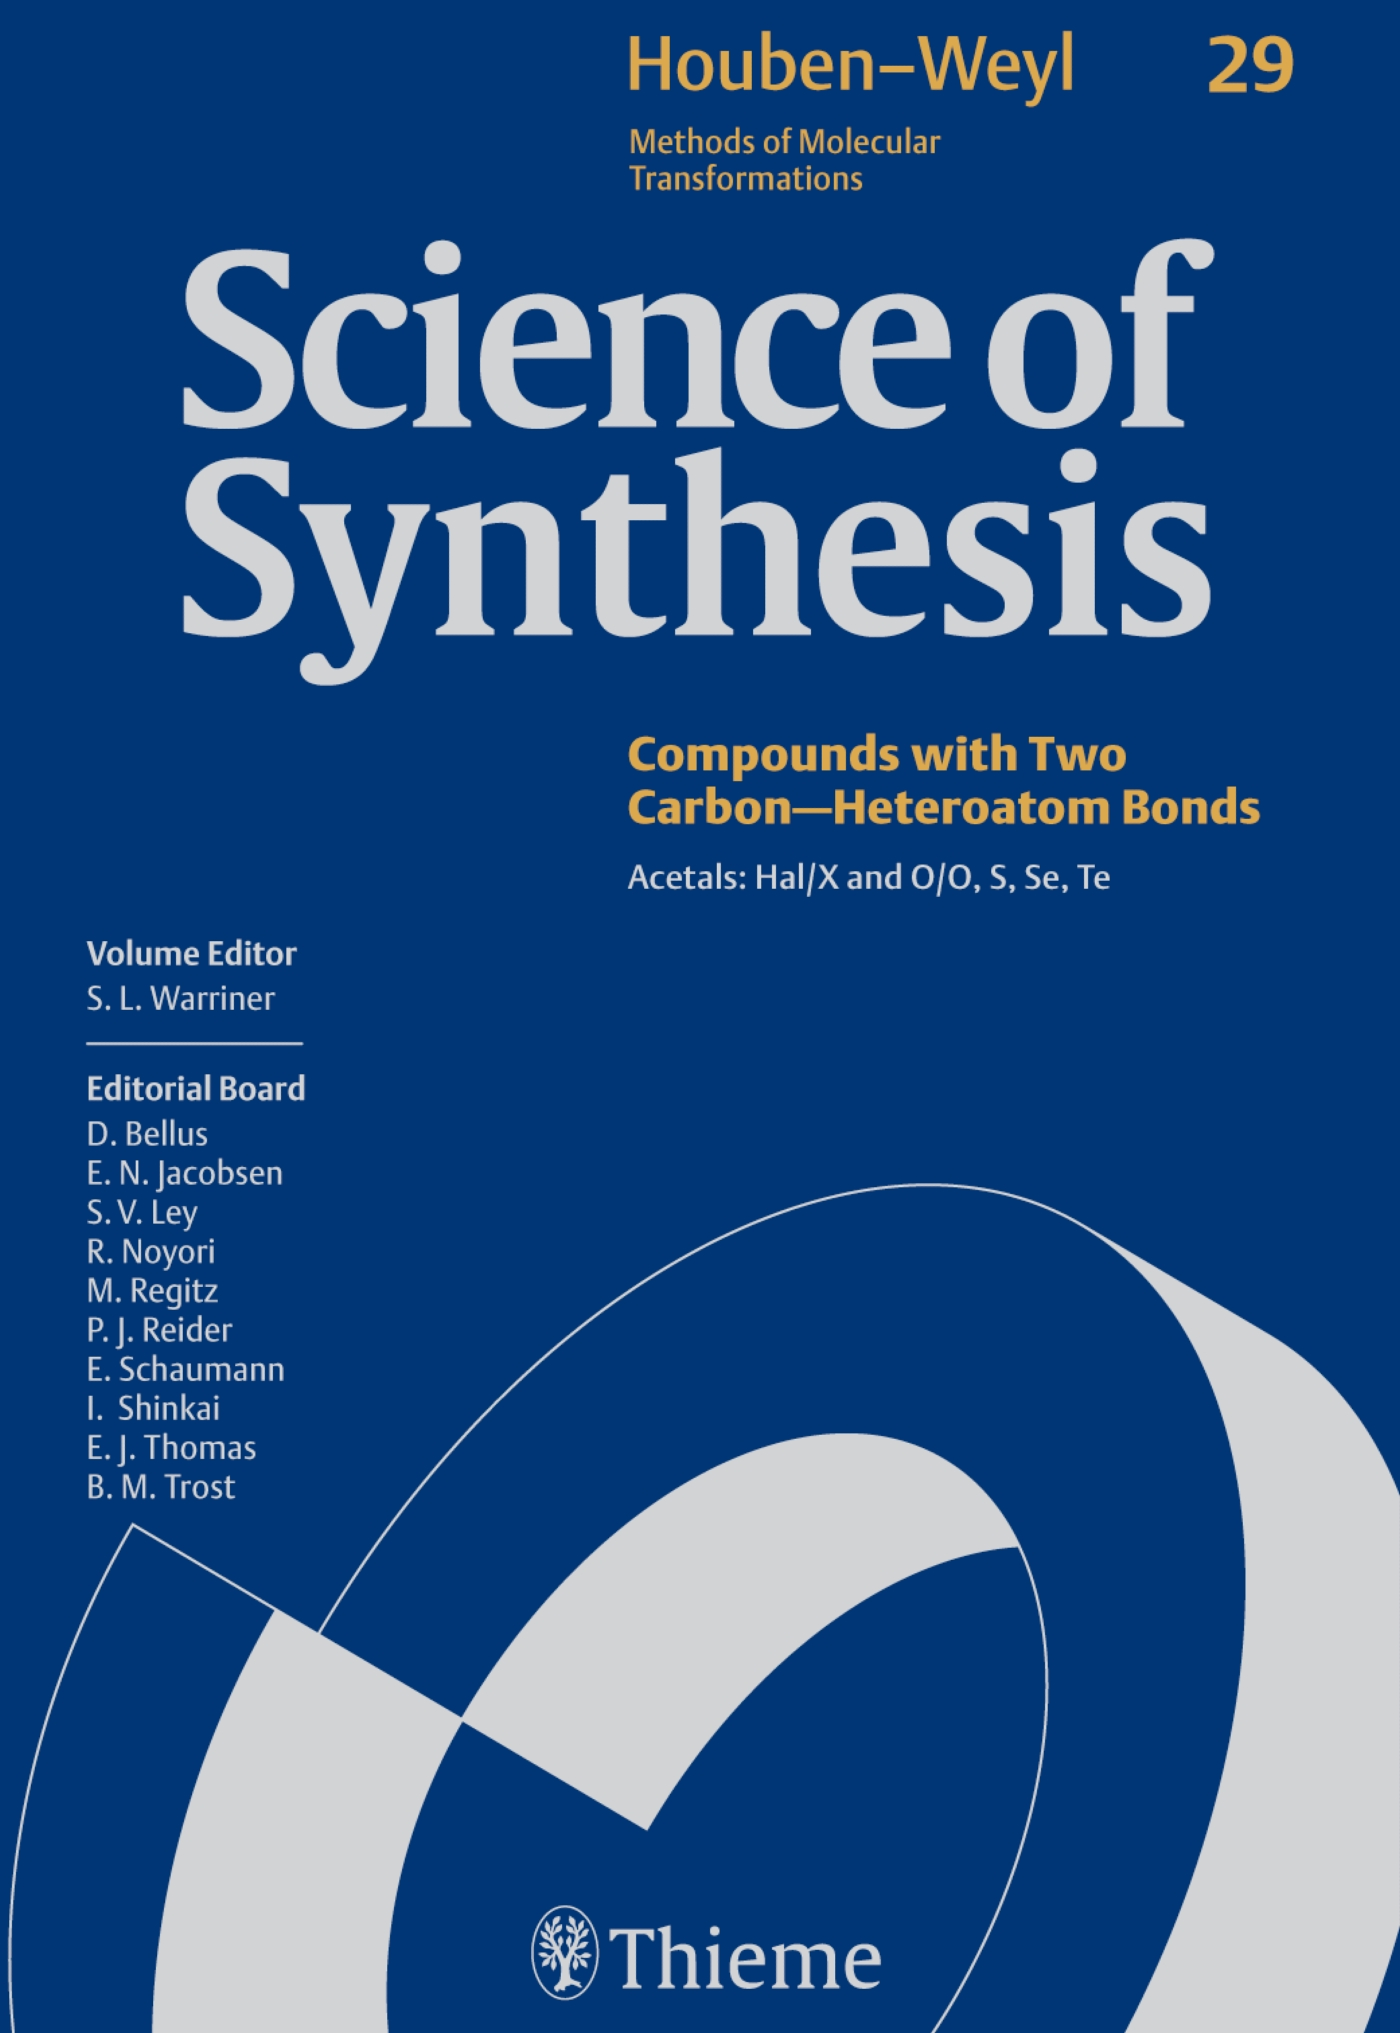 Science of Synthesis: Houben-Weyl Methods of Molecular Transformations  Vol. 29